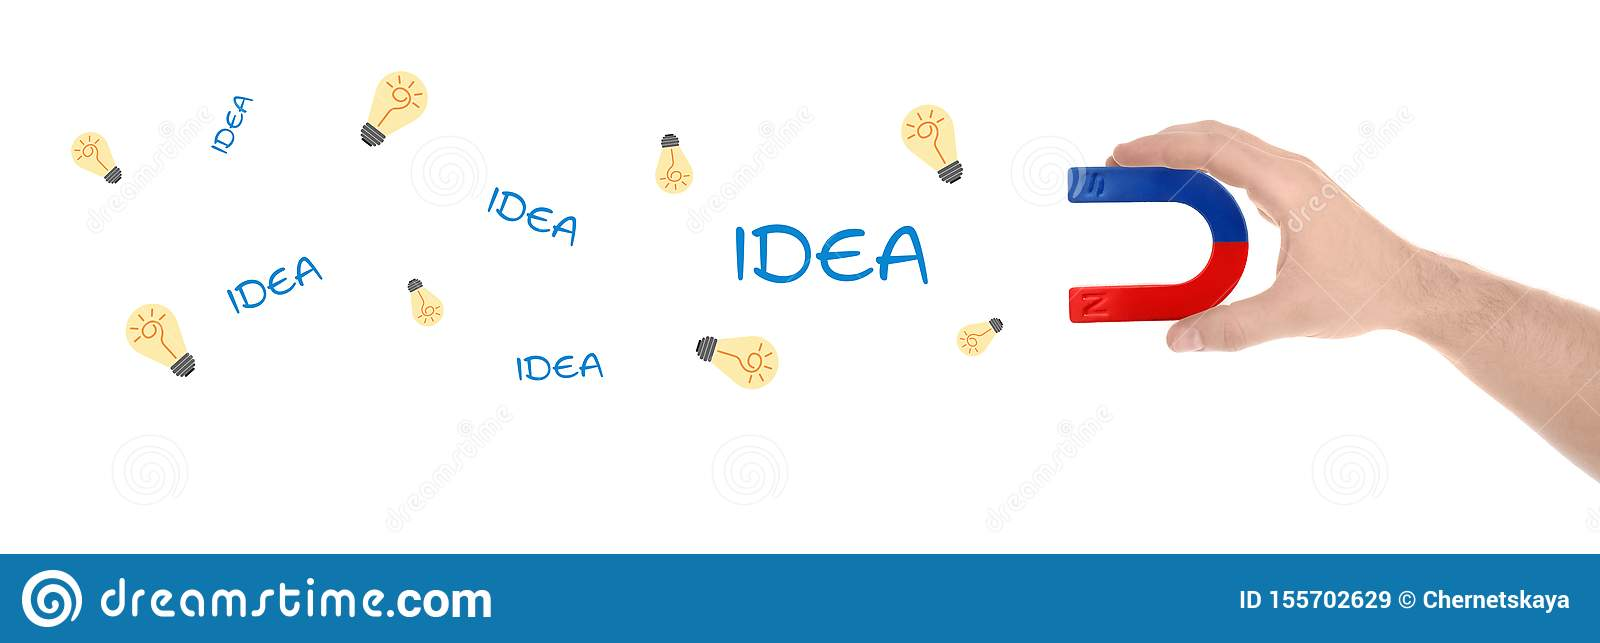 Man Attracting Ideas In Form Of Light Bulbs With Magnet On White Background Creative Design Stock Image Image Of Leader Ideas 155702629